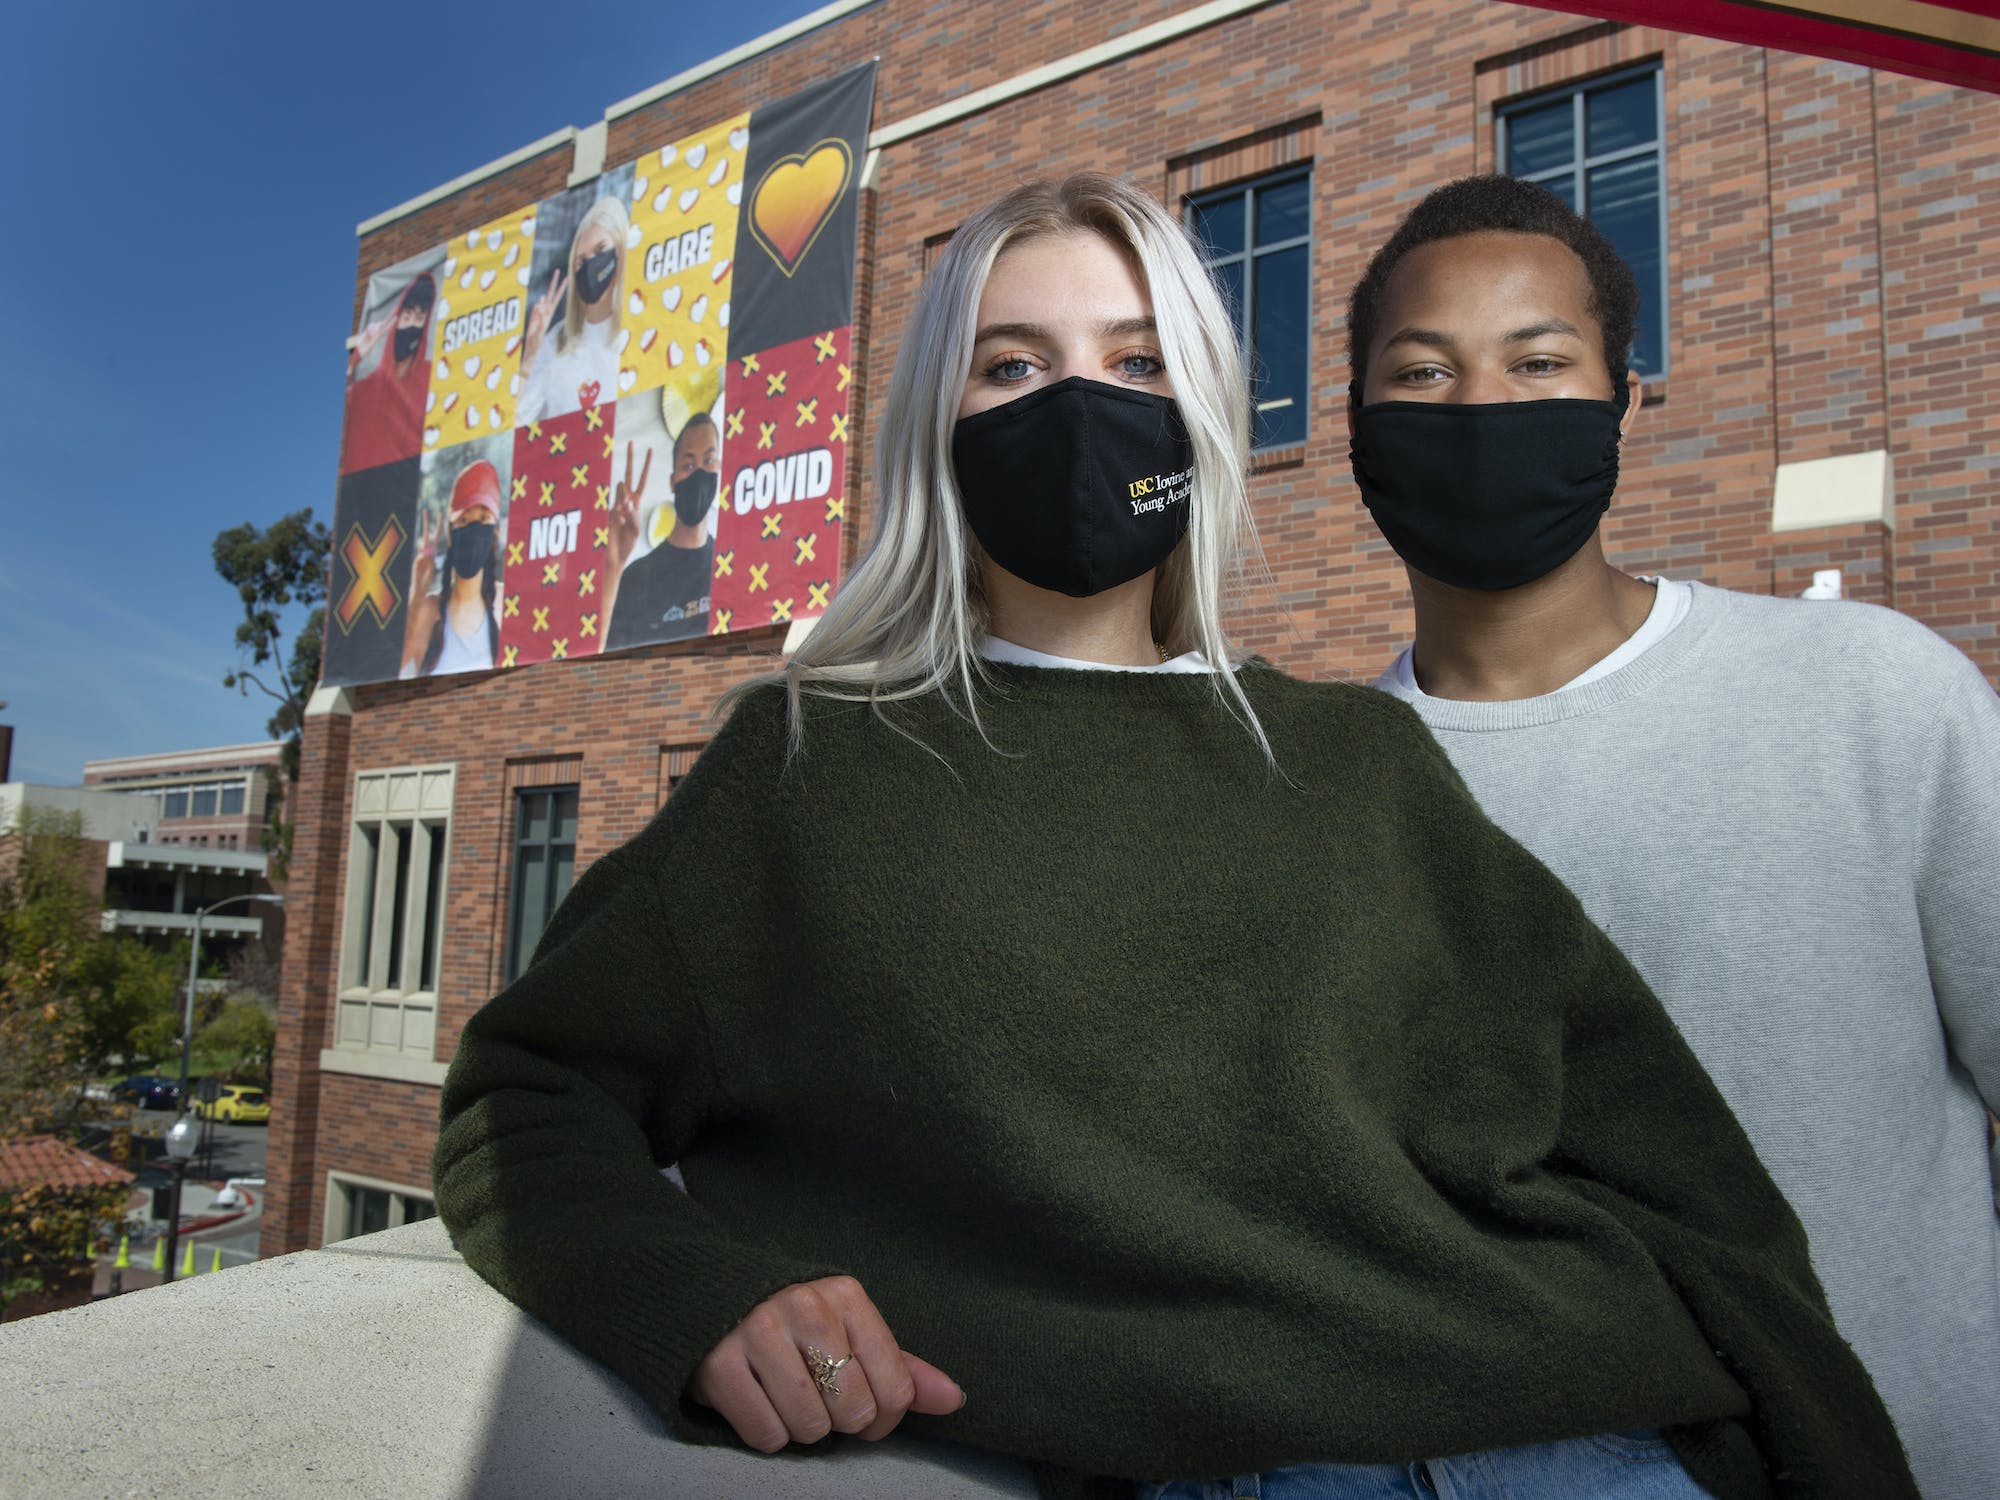 Two students wearing masks in front of building